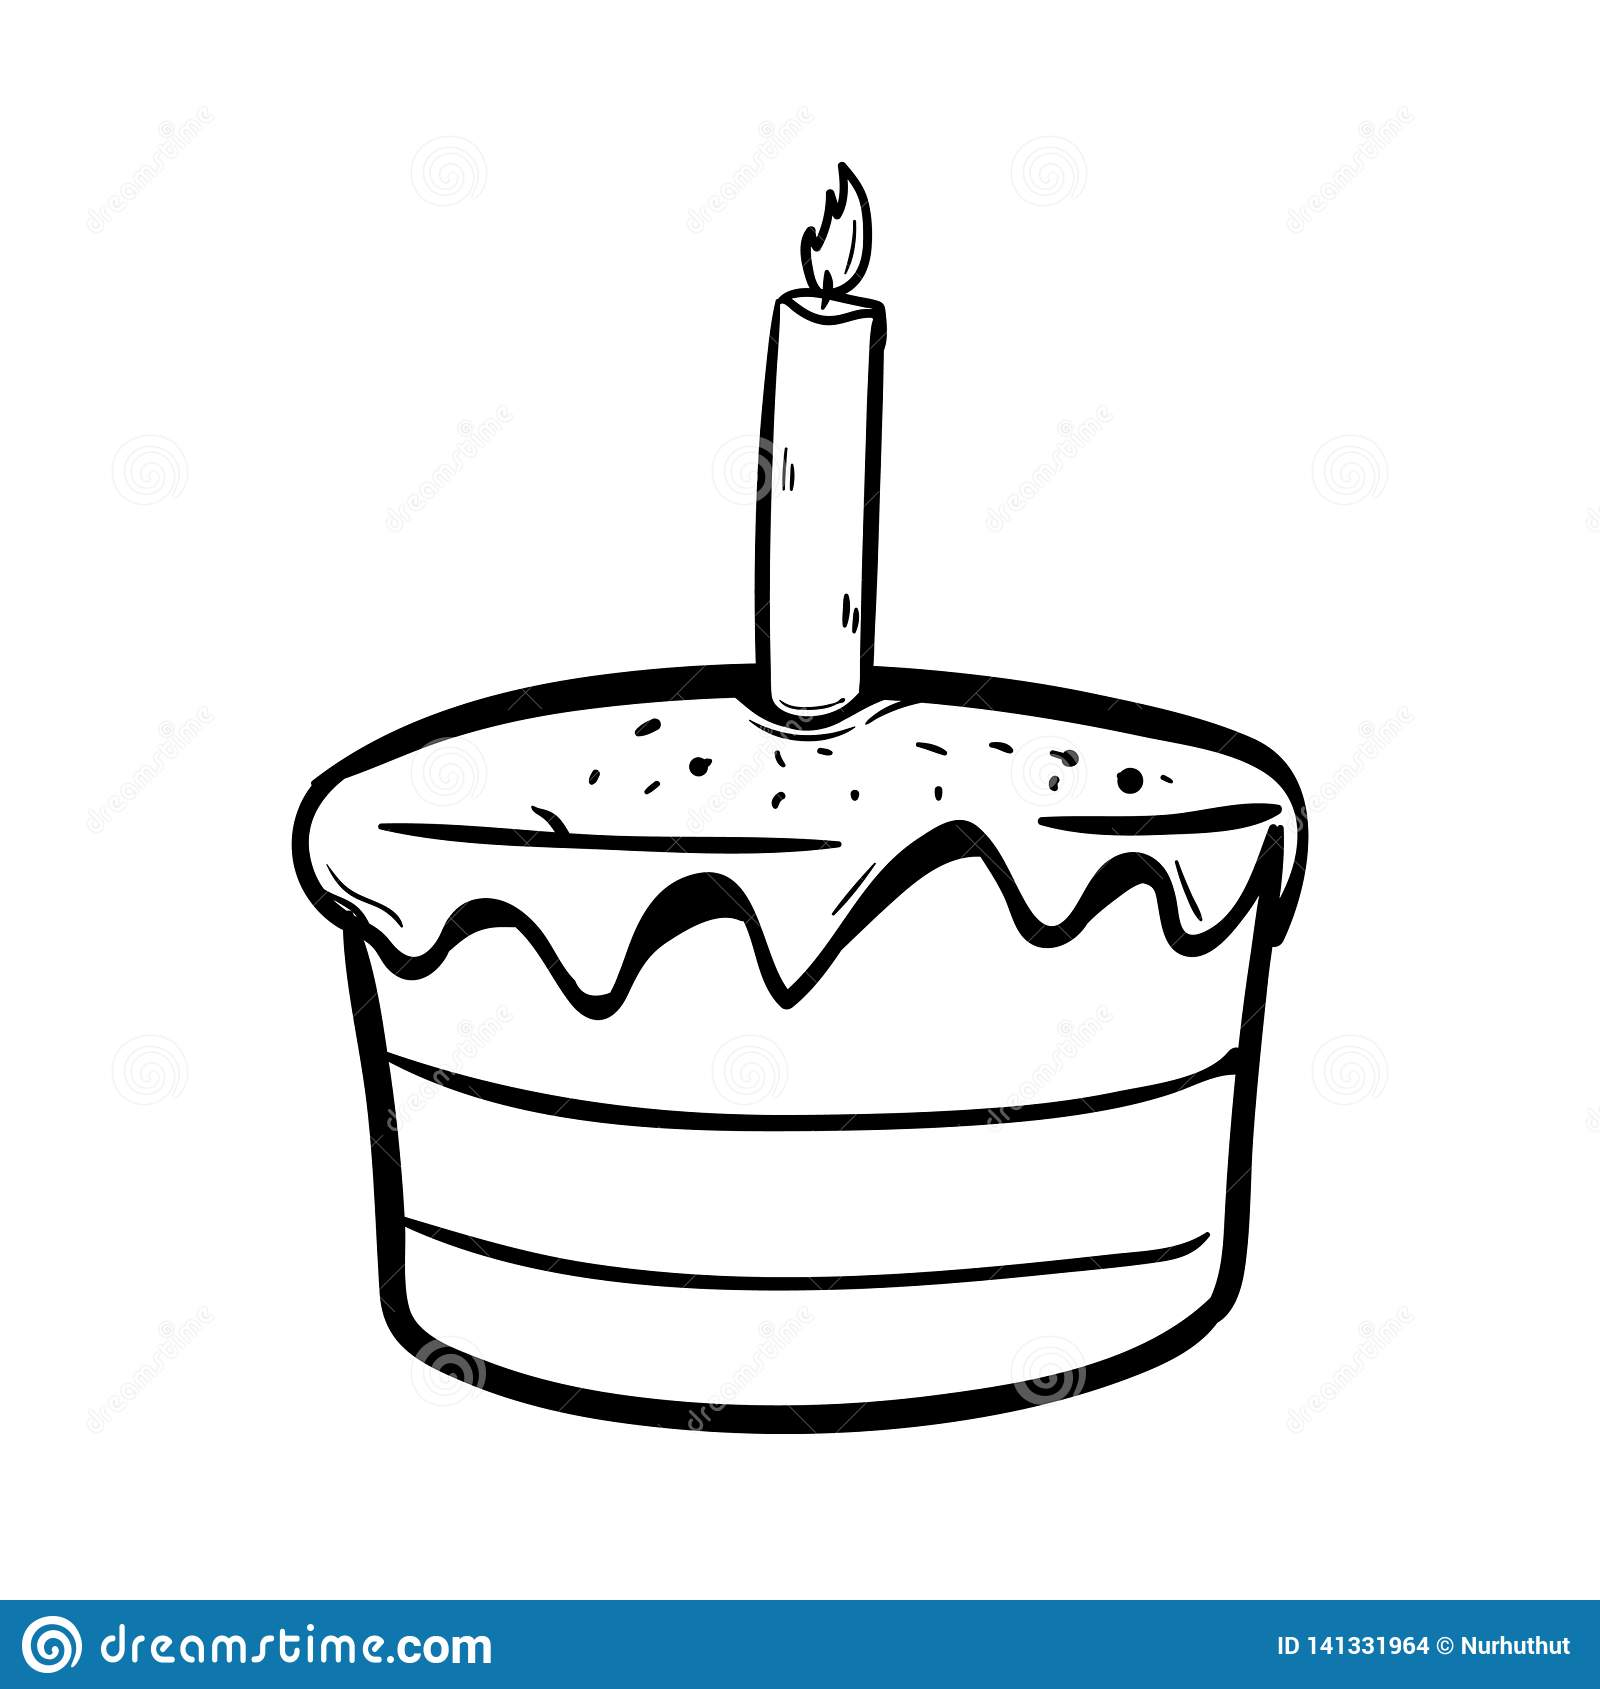 Strange Birthday Cake With Outline Using Doodle Art Stock Illustration Funny Birthday Cards Online Alyptdamsfinfo